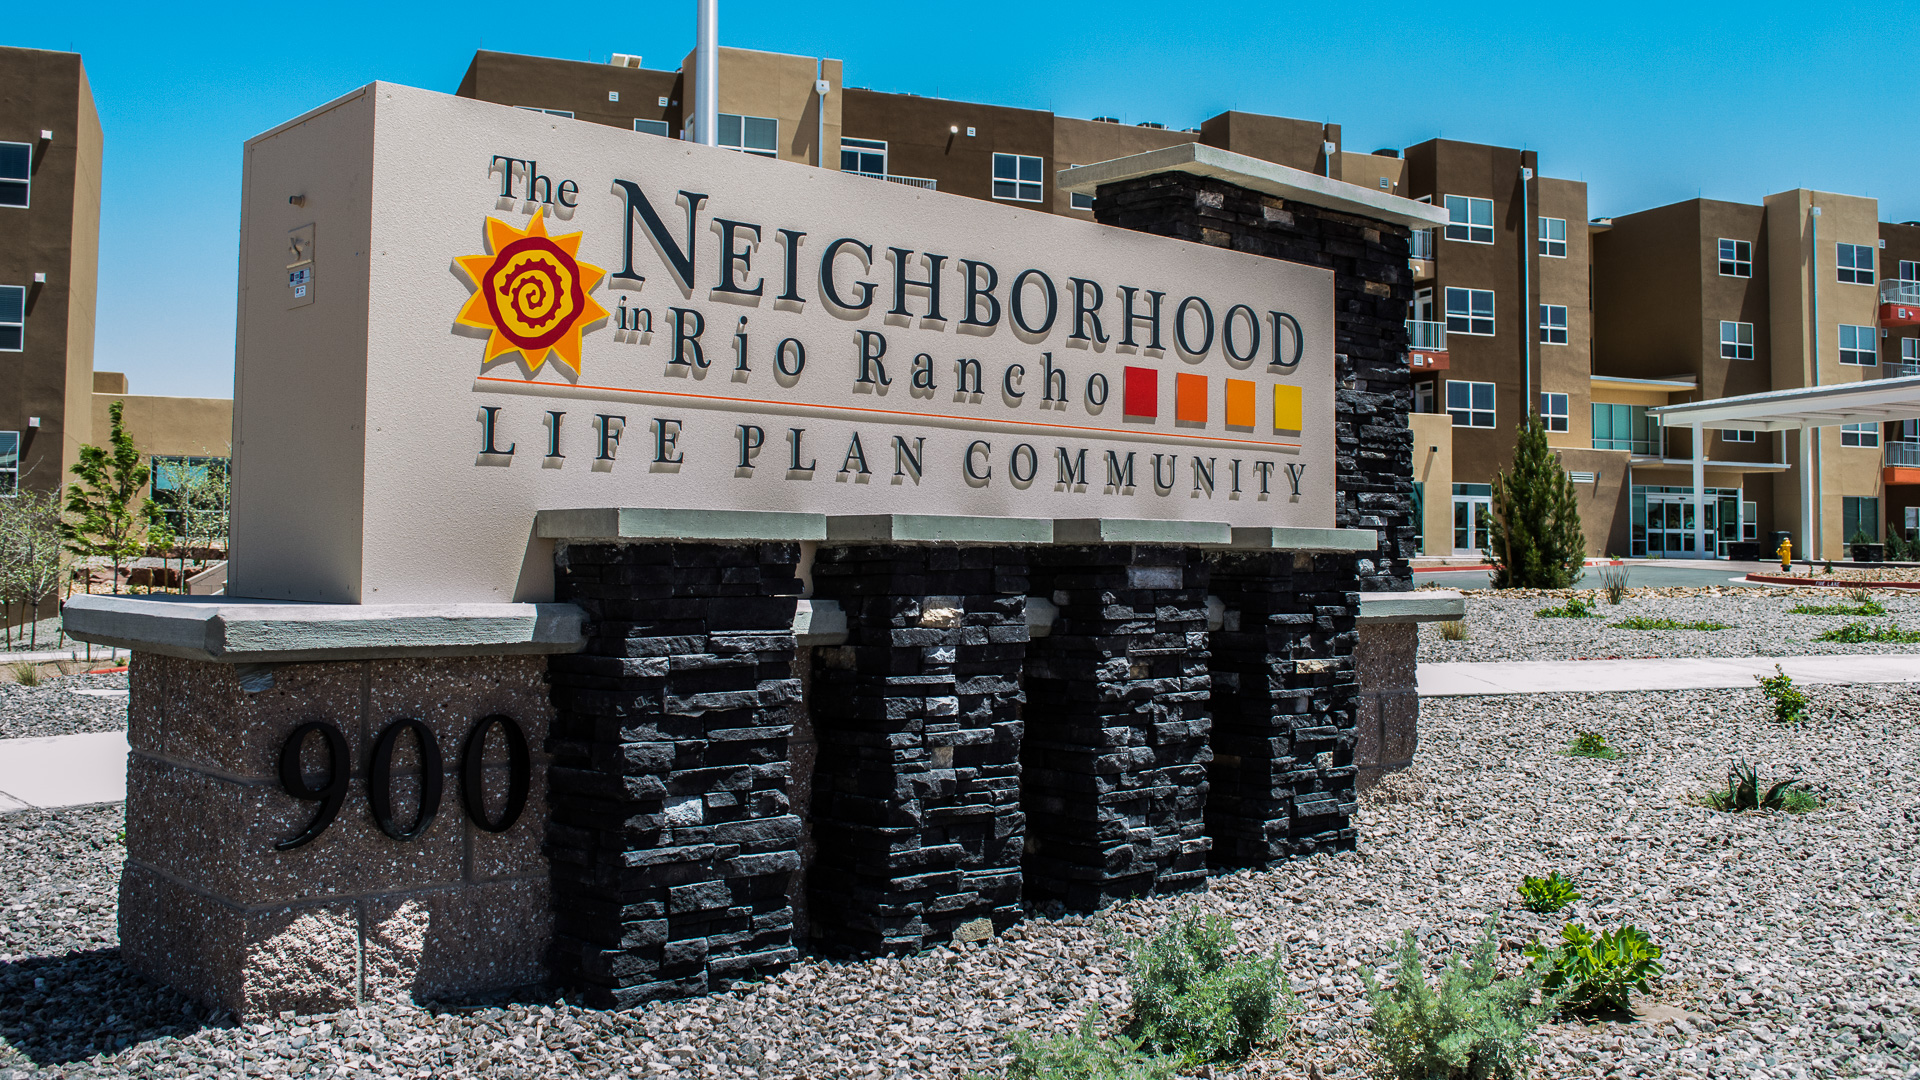 The Neighborhood Rio Rancho